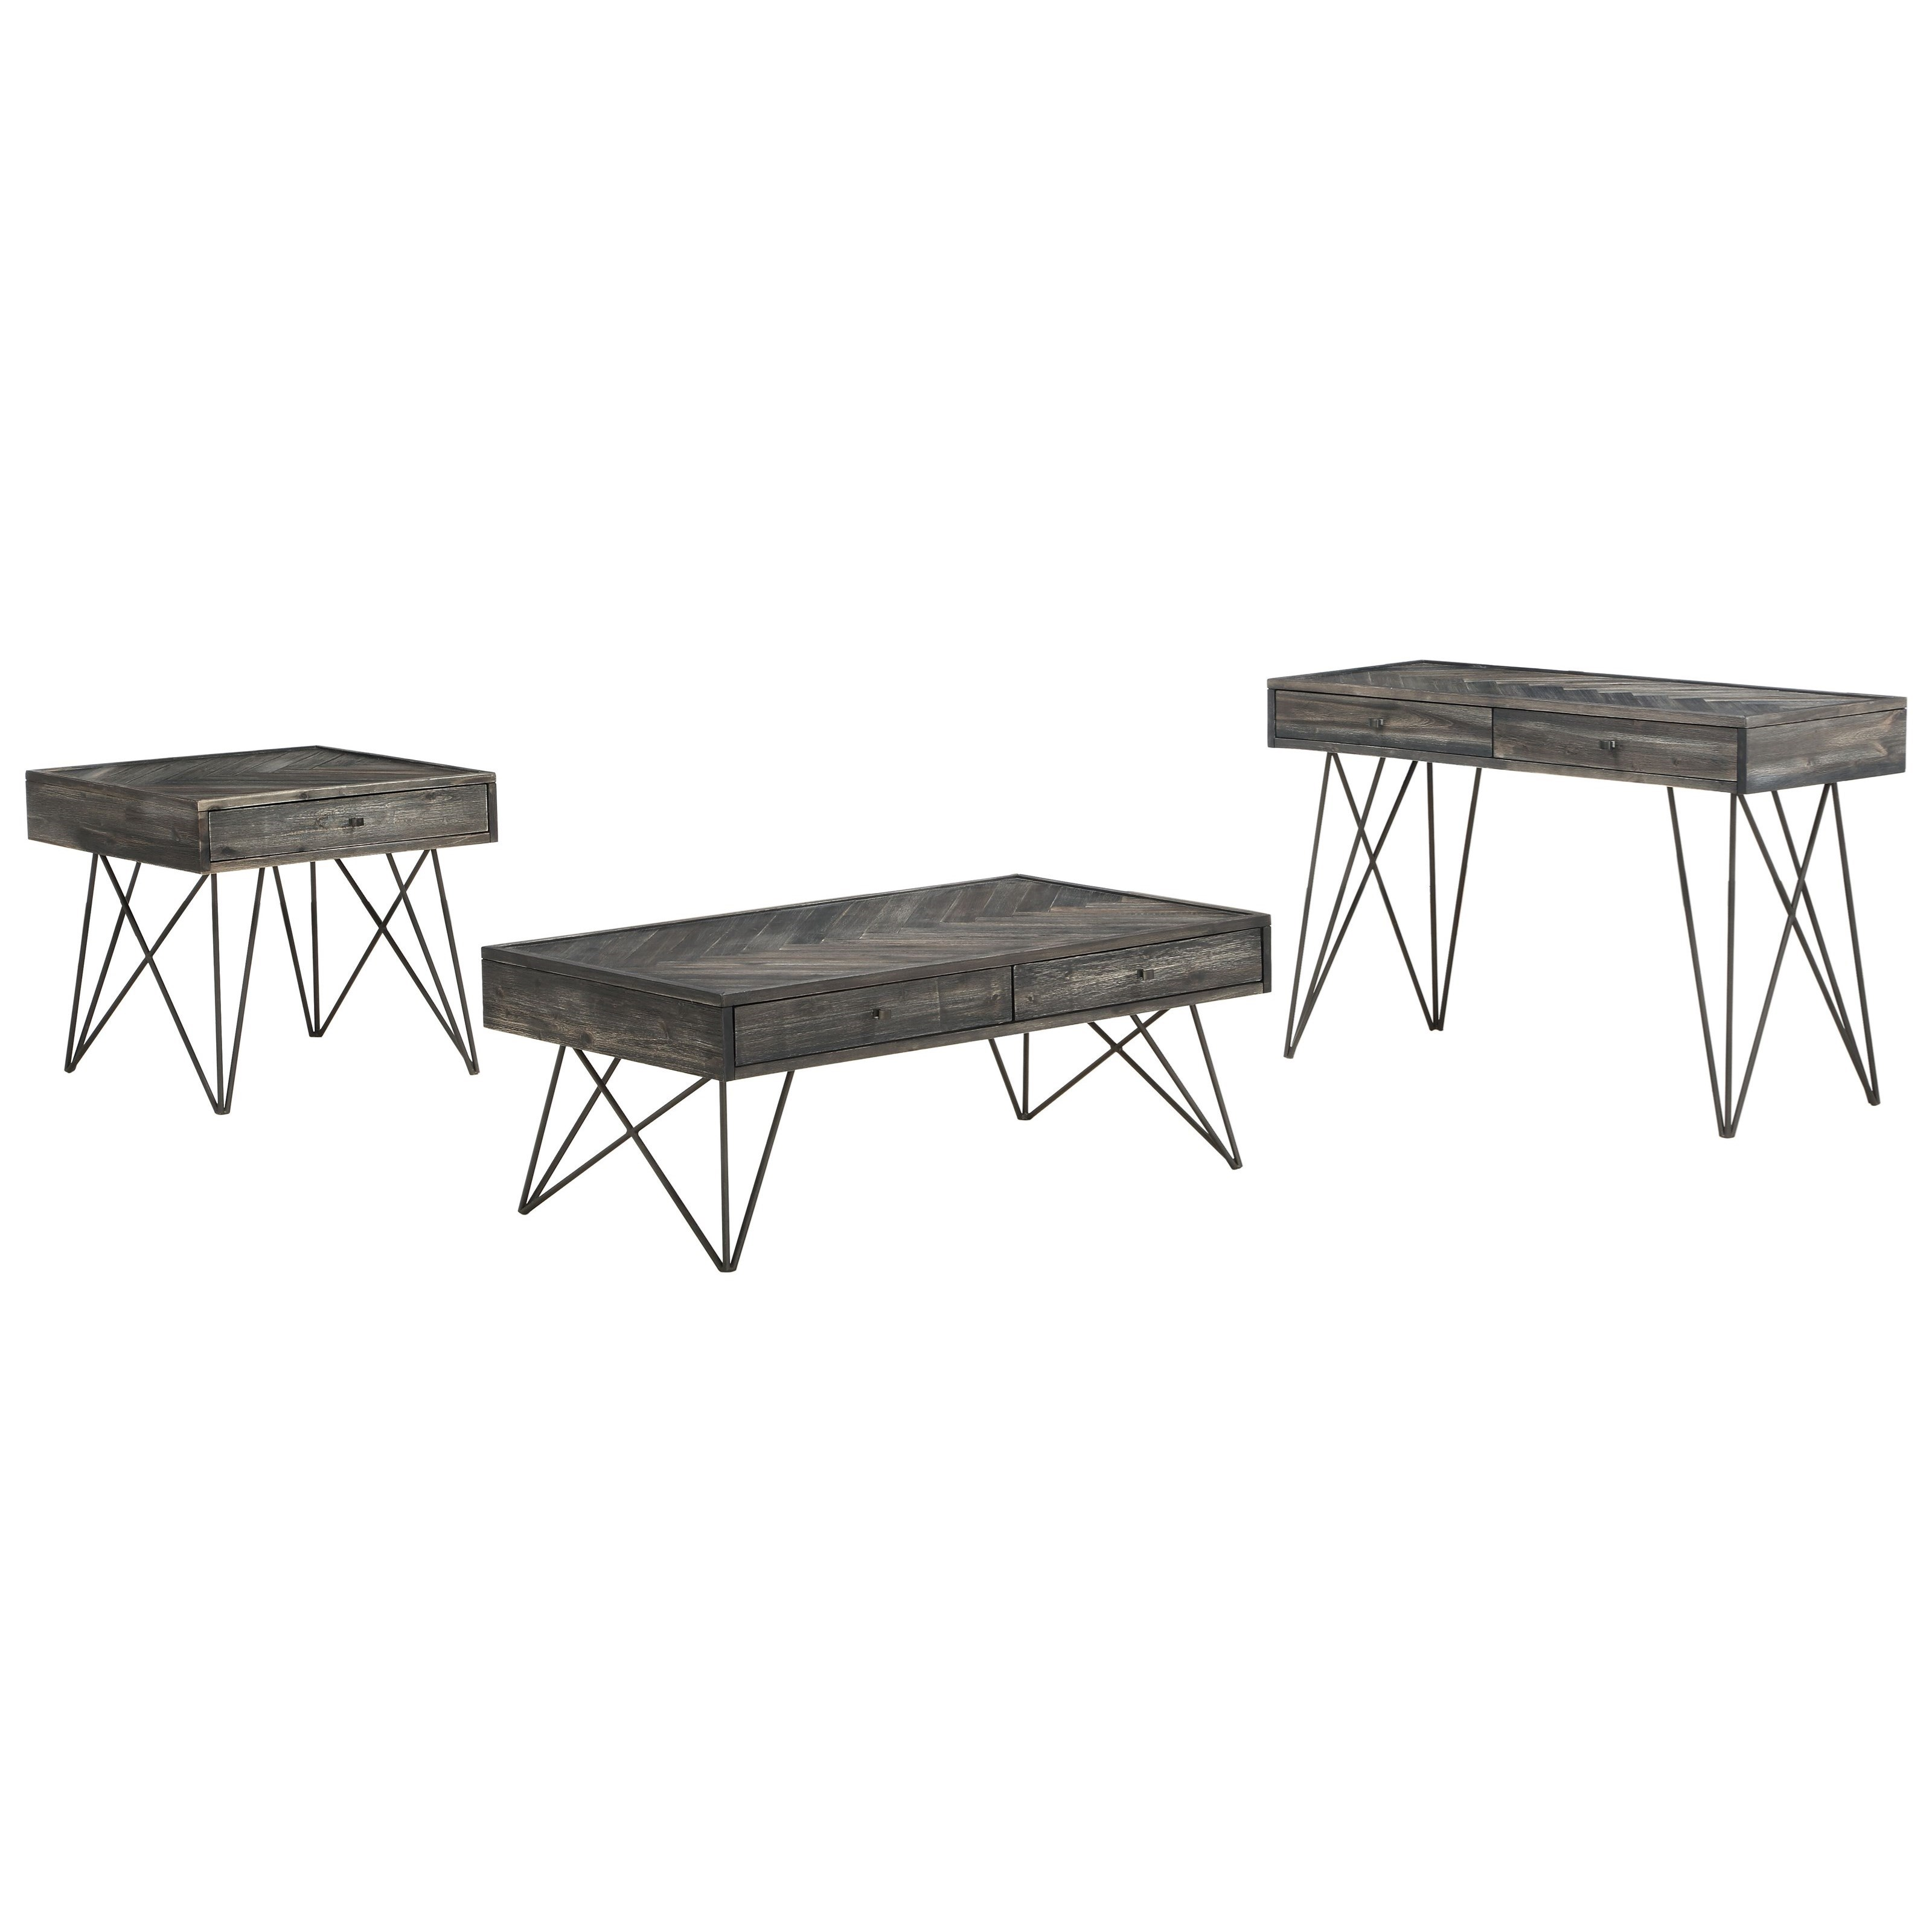 Aspen Court Occasional Table Group by Coast to Coast Imports at Johnny Janosik